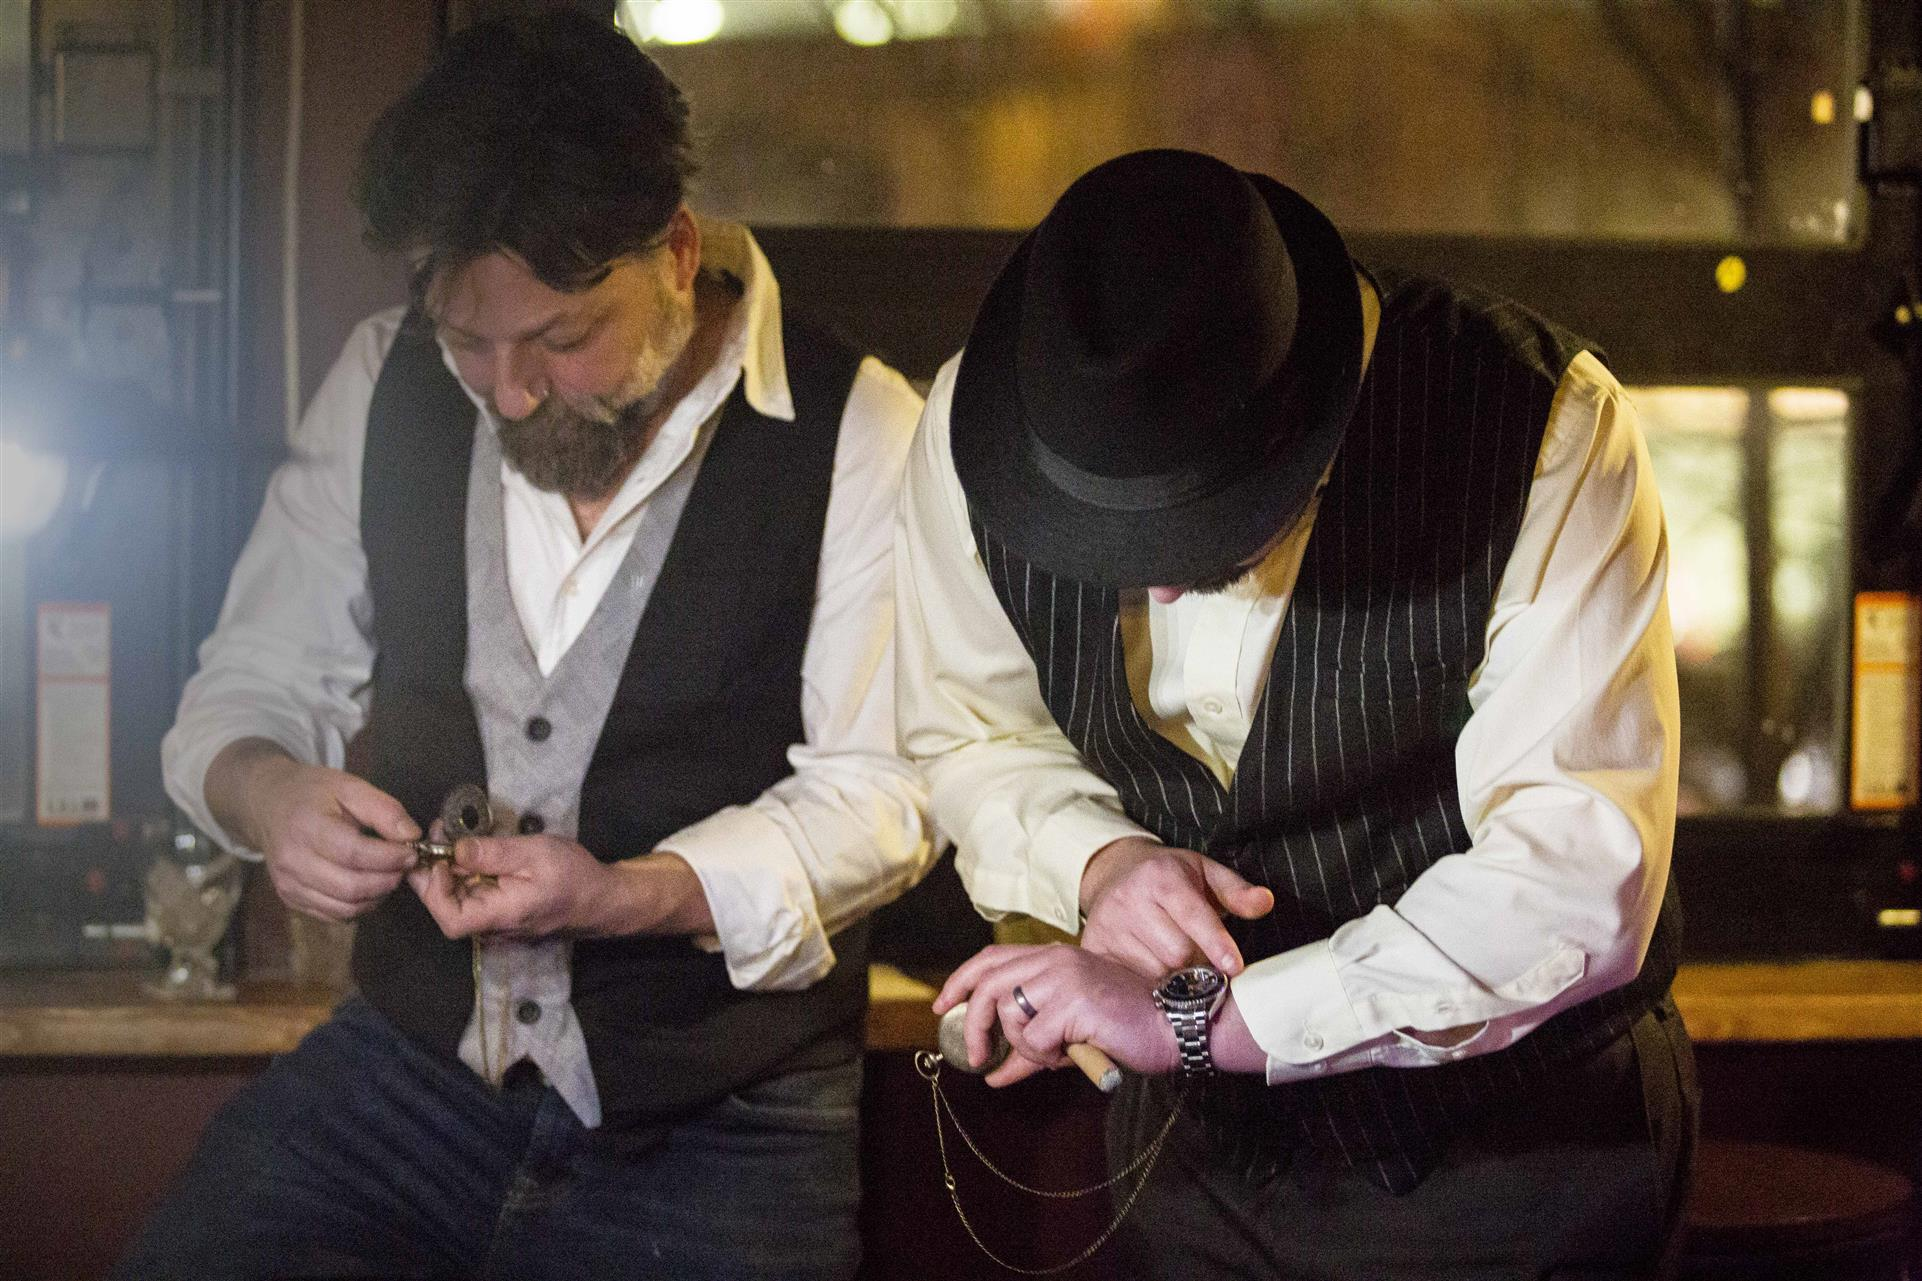 two men dressed in 1920s era checking their watches